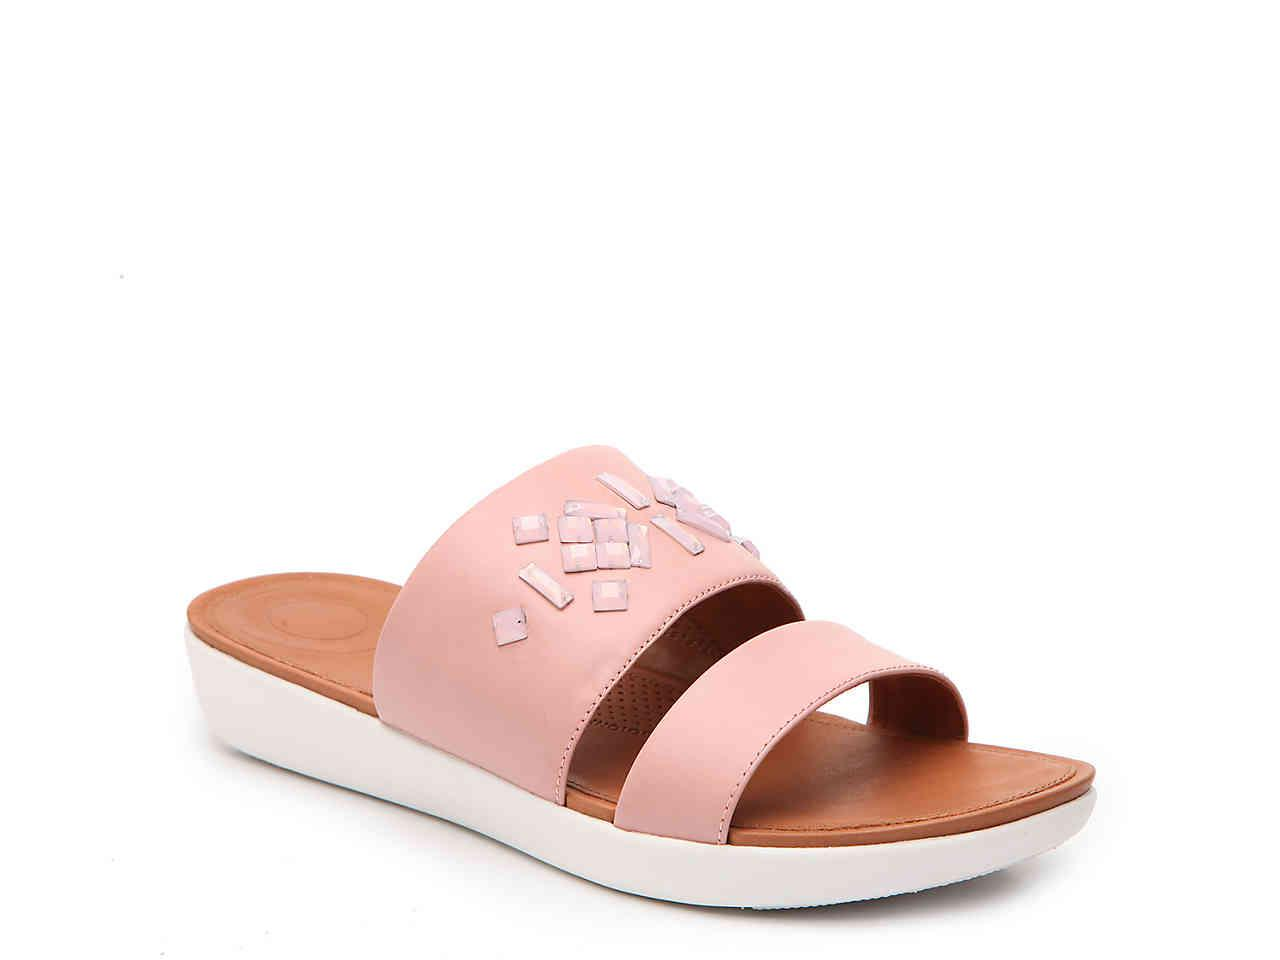 0824c24df15 Lyst - Fitflop Delta Wedge Sandal in Pink - Save 70%